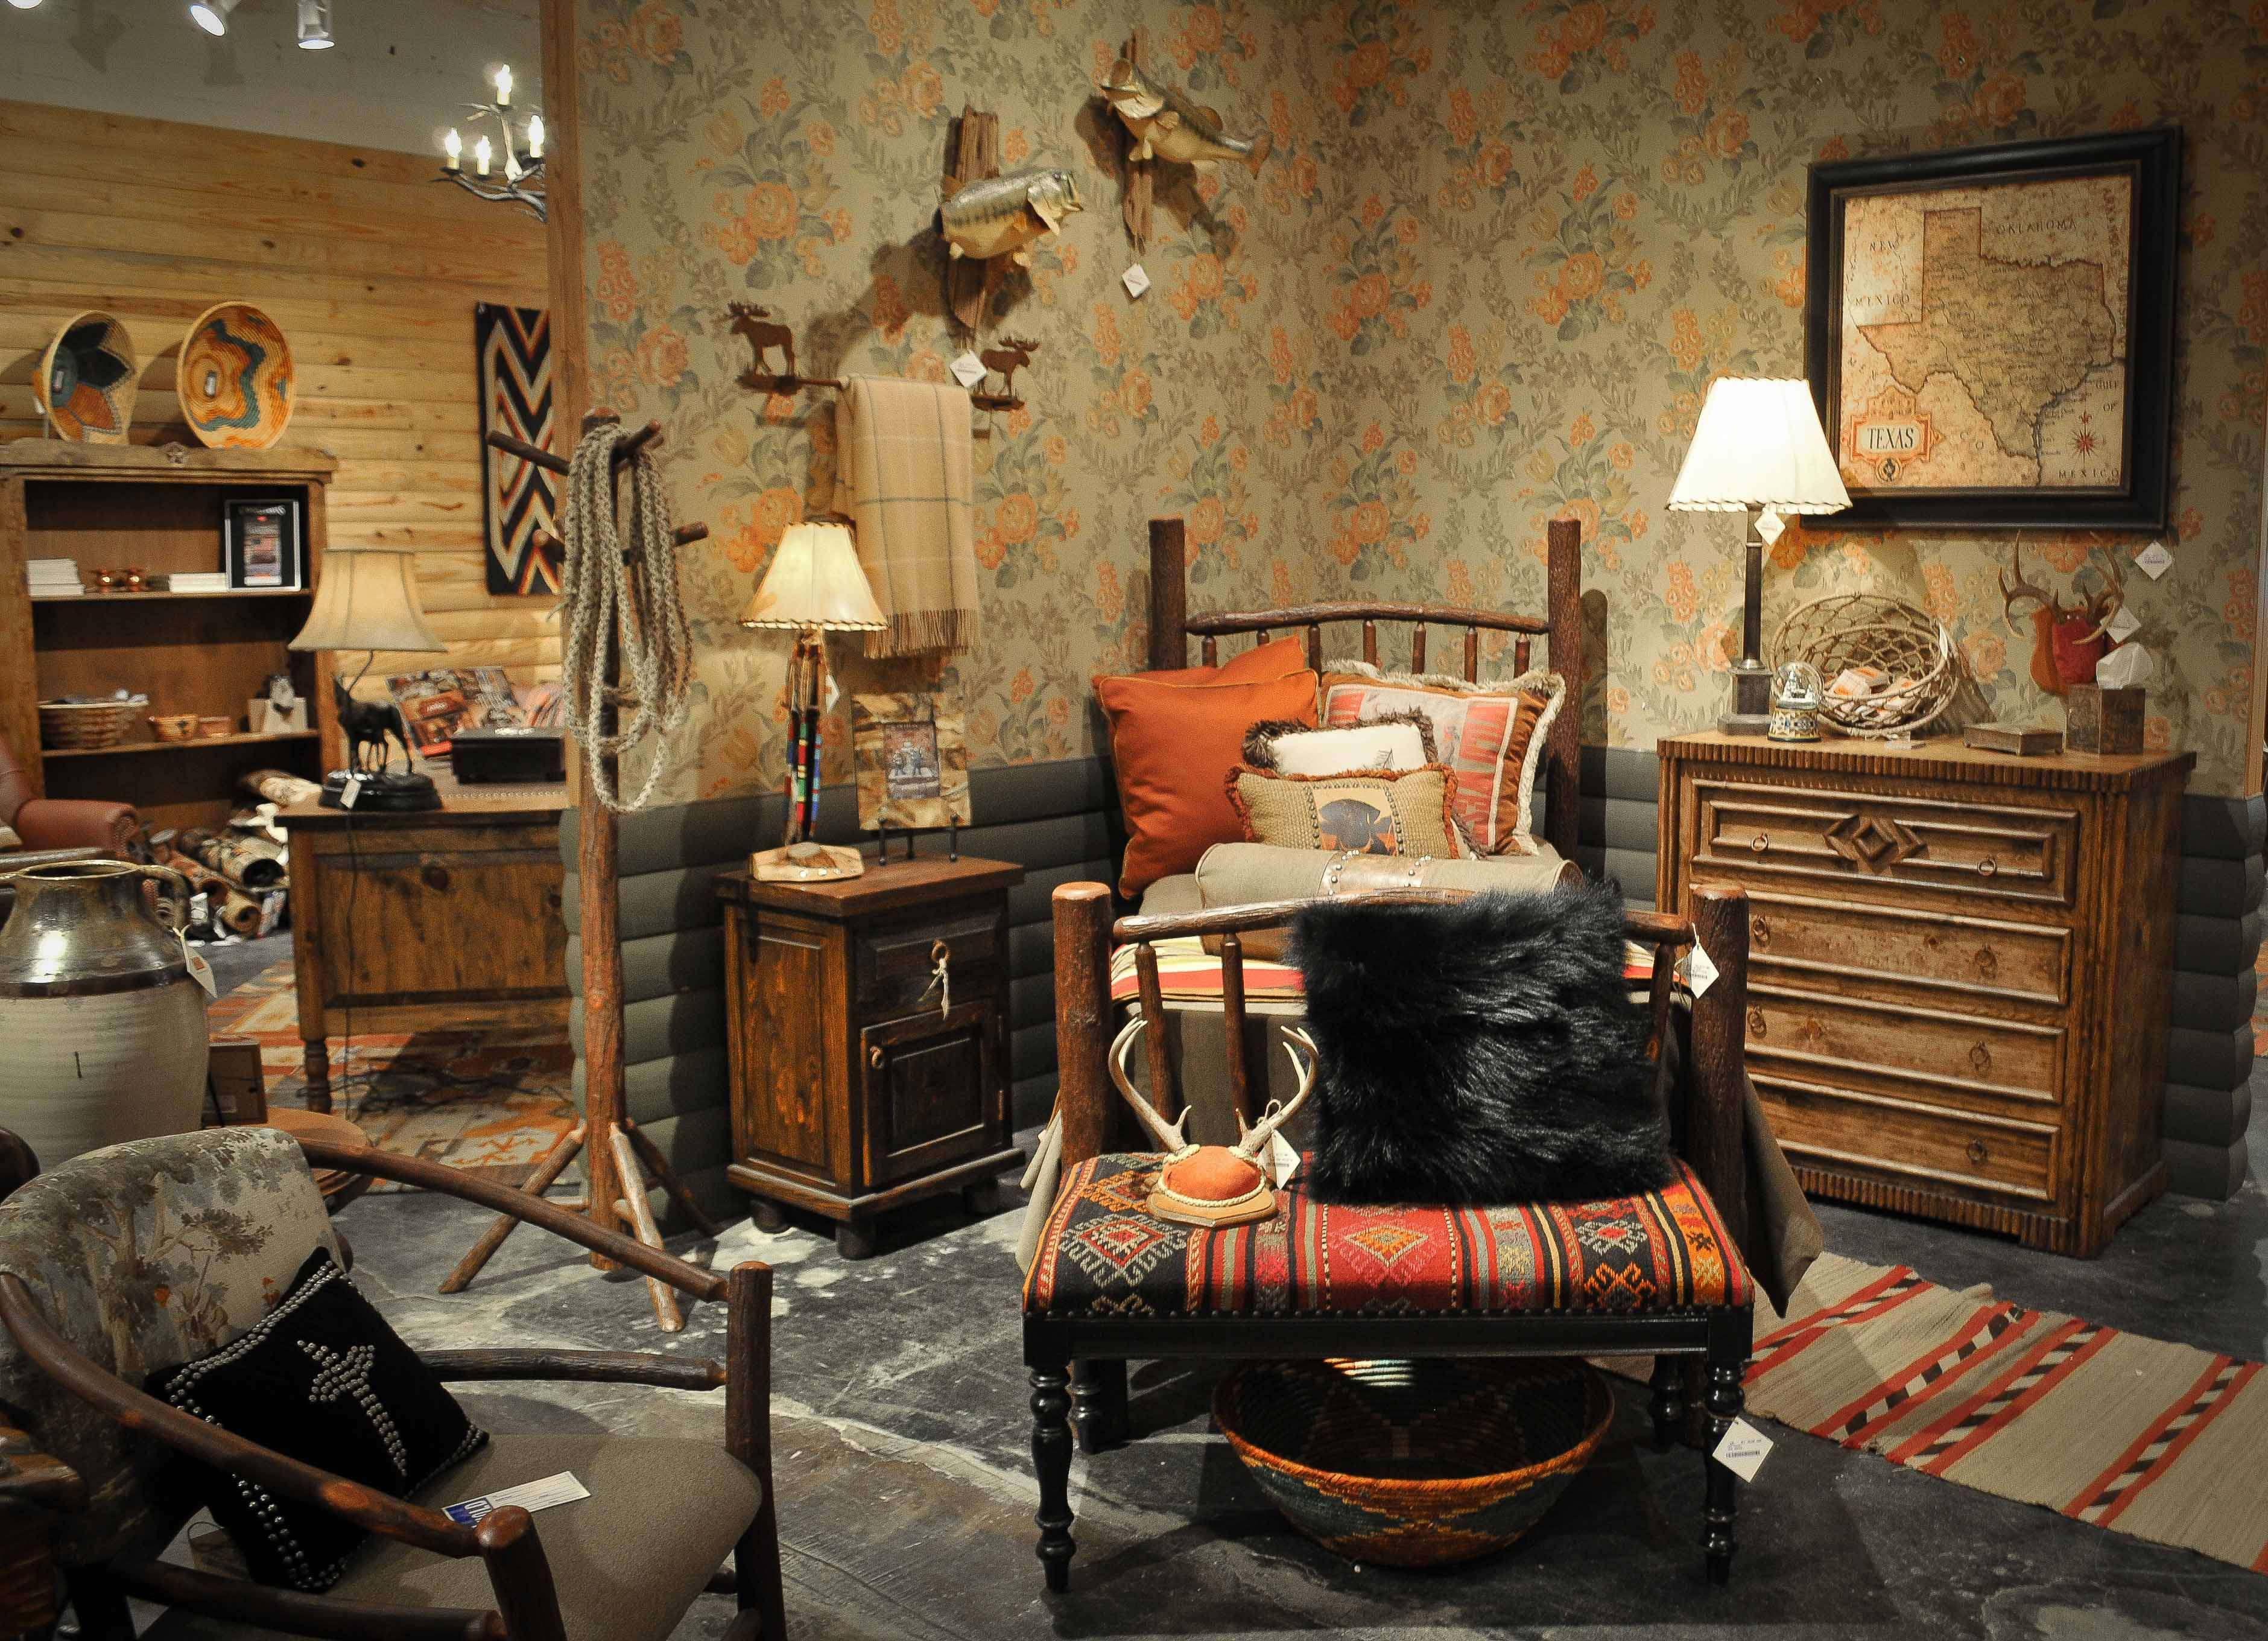 rustic bedroom furniture at anteks furniture store in dallas. Black Bedroom Furniture Sets. Home Design Ideas